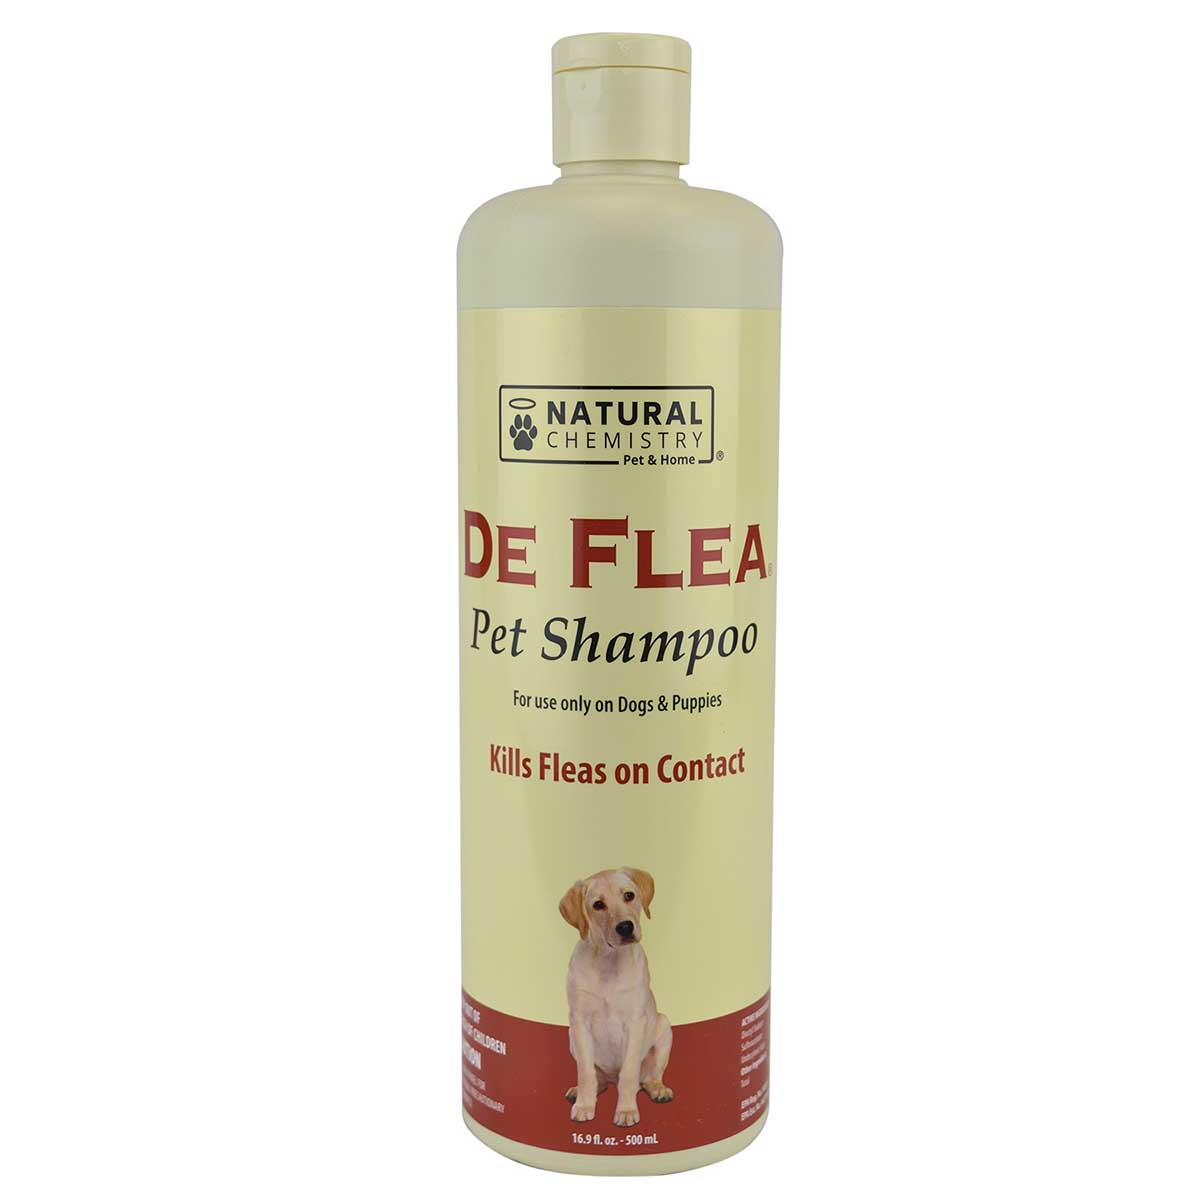 Natural Chemistry Deflea Pet Shampoo Ready to Use - 16.9 oz